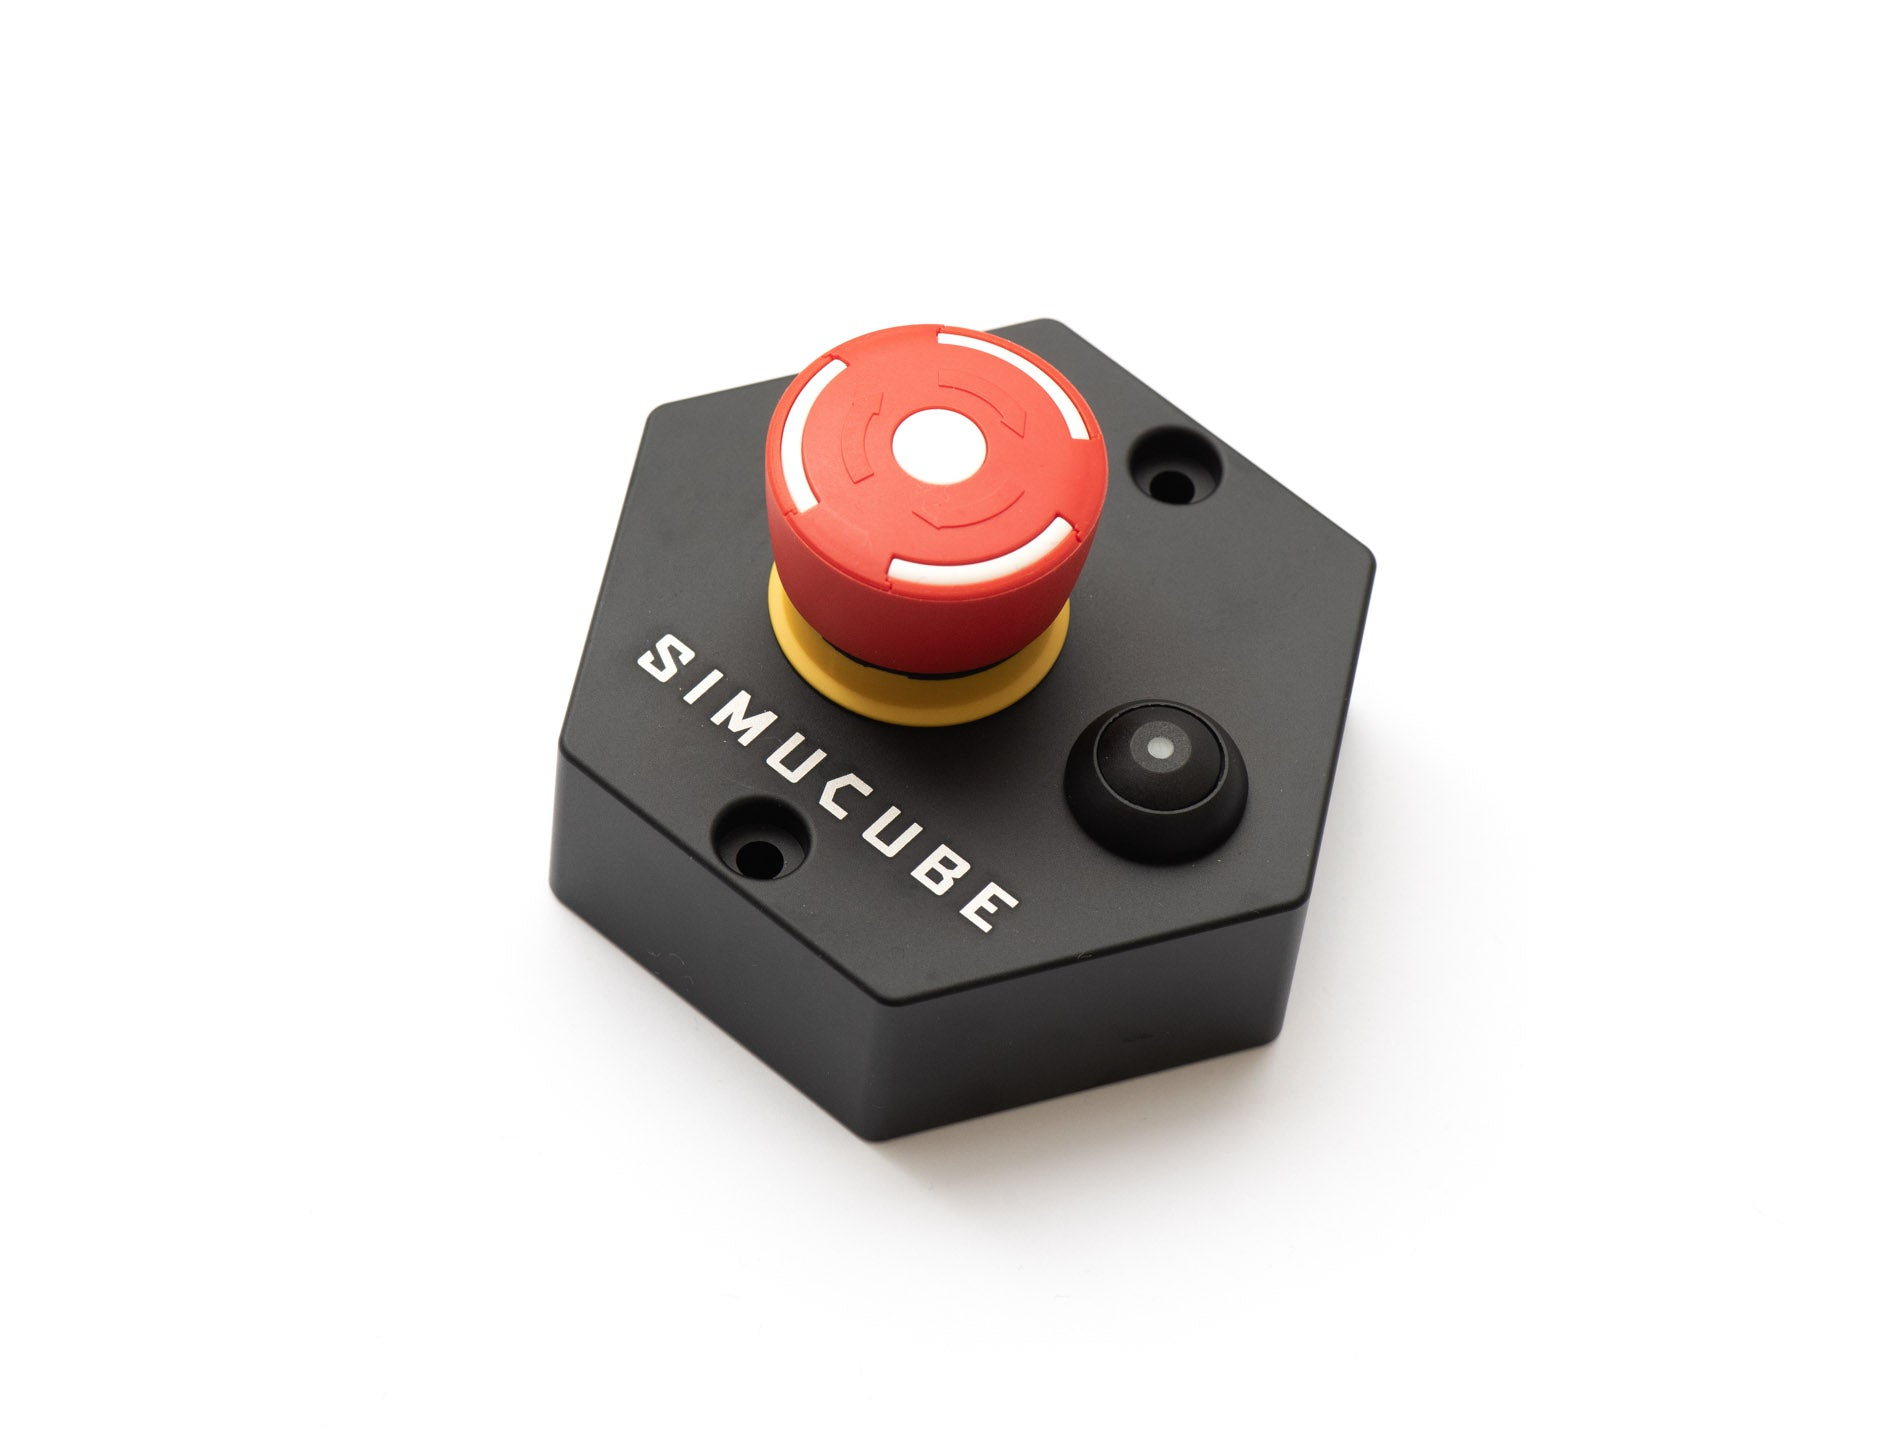 SC Premium Torque  off button